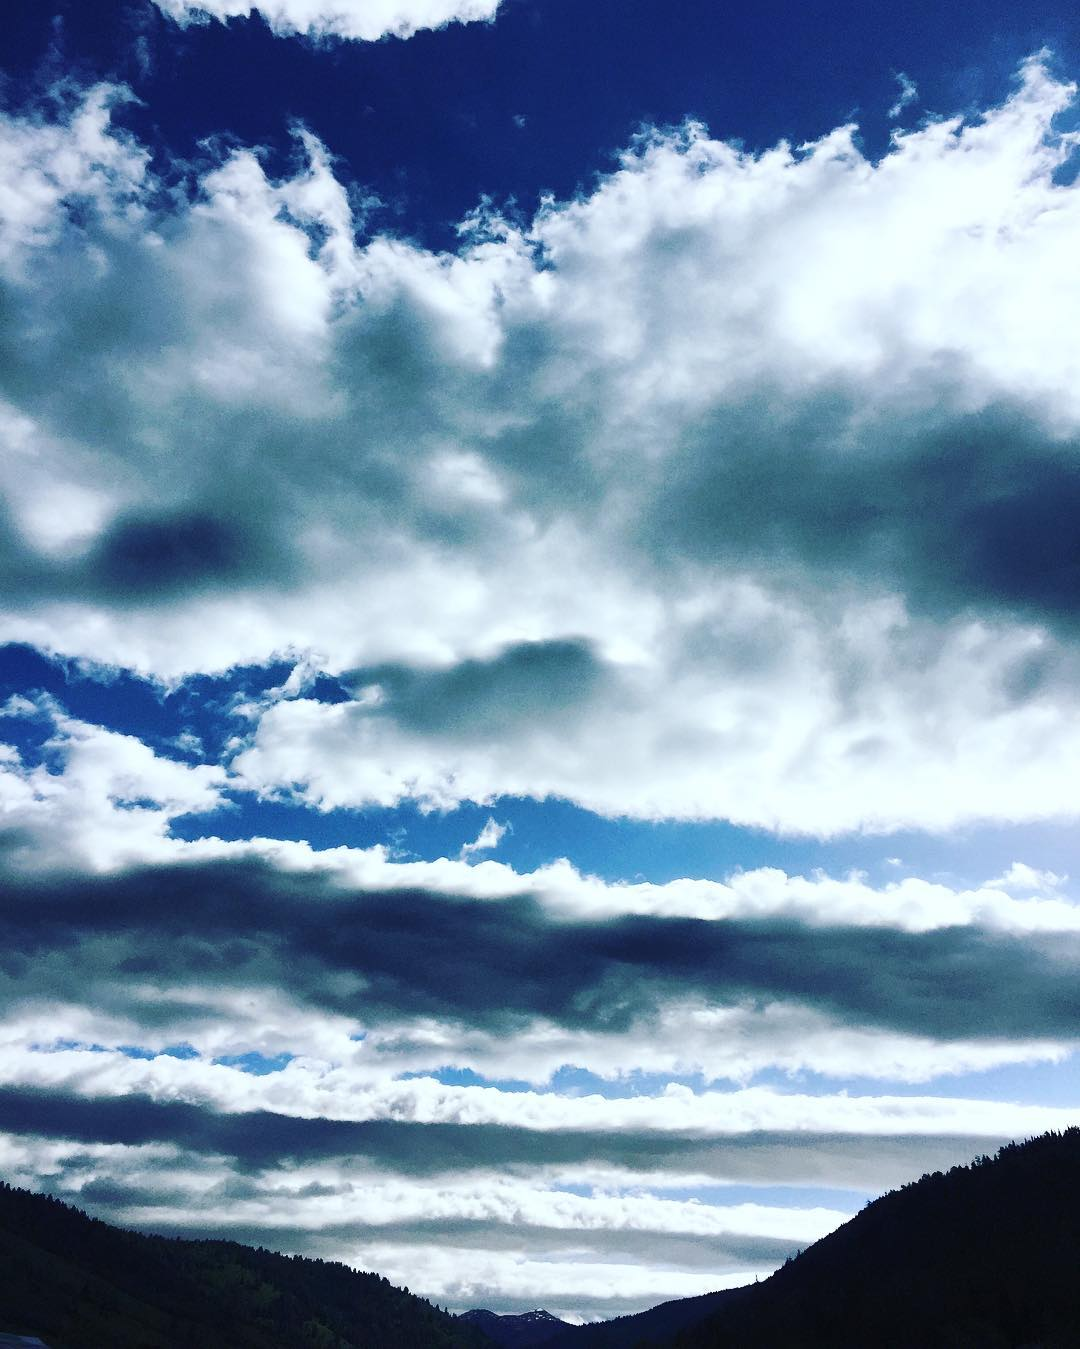 The clouds roll through like waves today in Jackson Hole, lines of vapor and dust, reminding me of the ever present cycles of life. #avalon7 #reconnect #nature www.avalon7.co